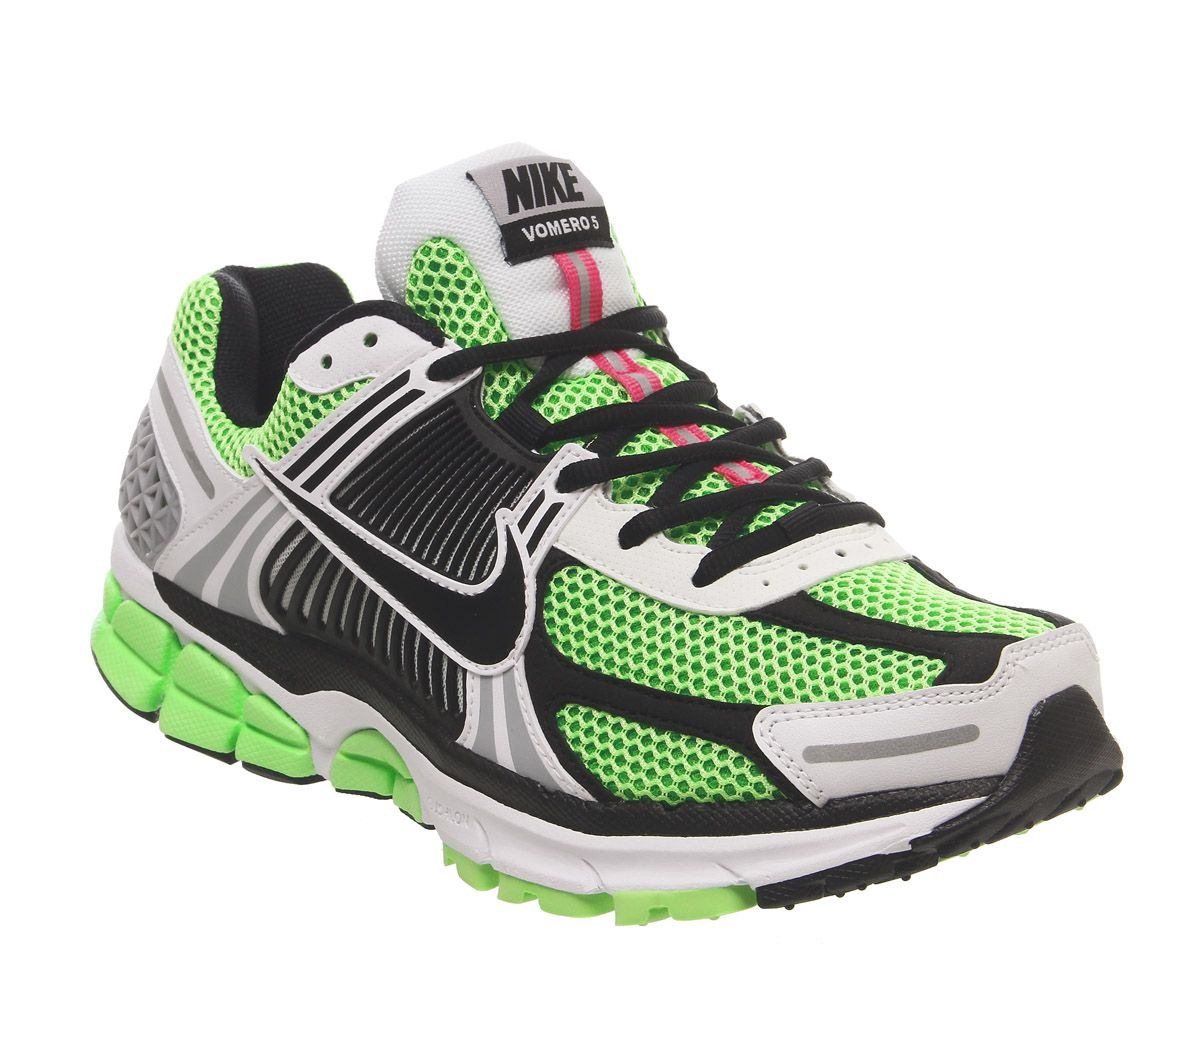 the latest d7b40 37b0b Nike, Nike Zoom Vomero 5 Se Sp Trainers, Electric Green Black White Sail